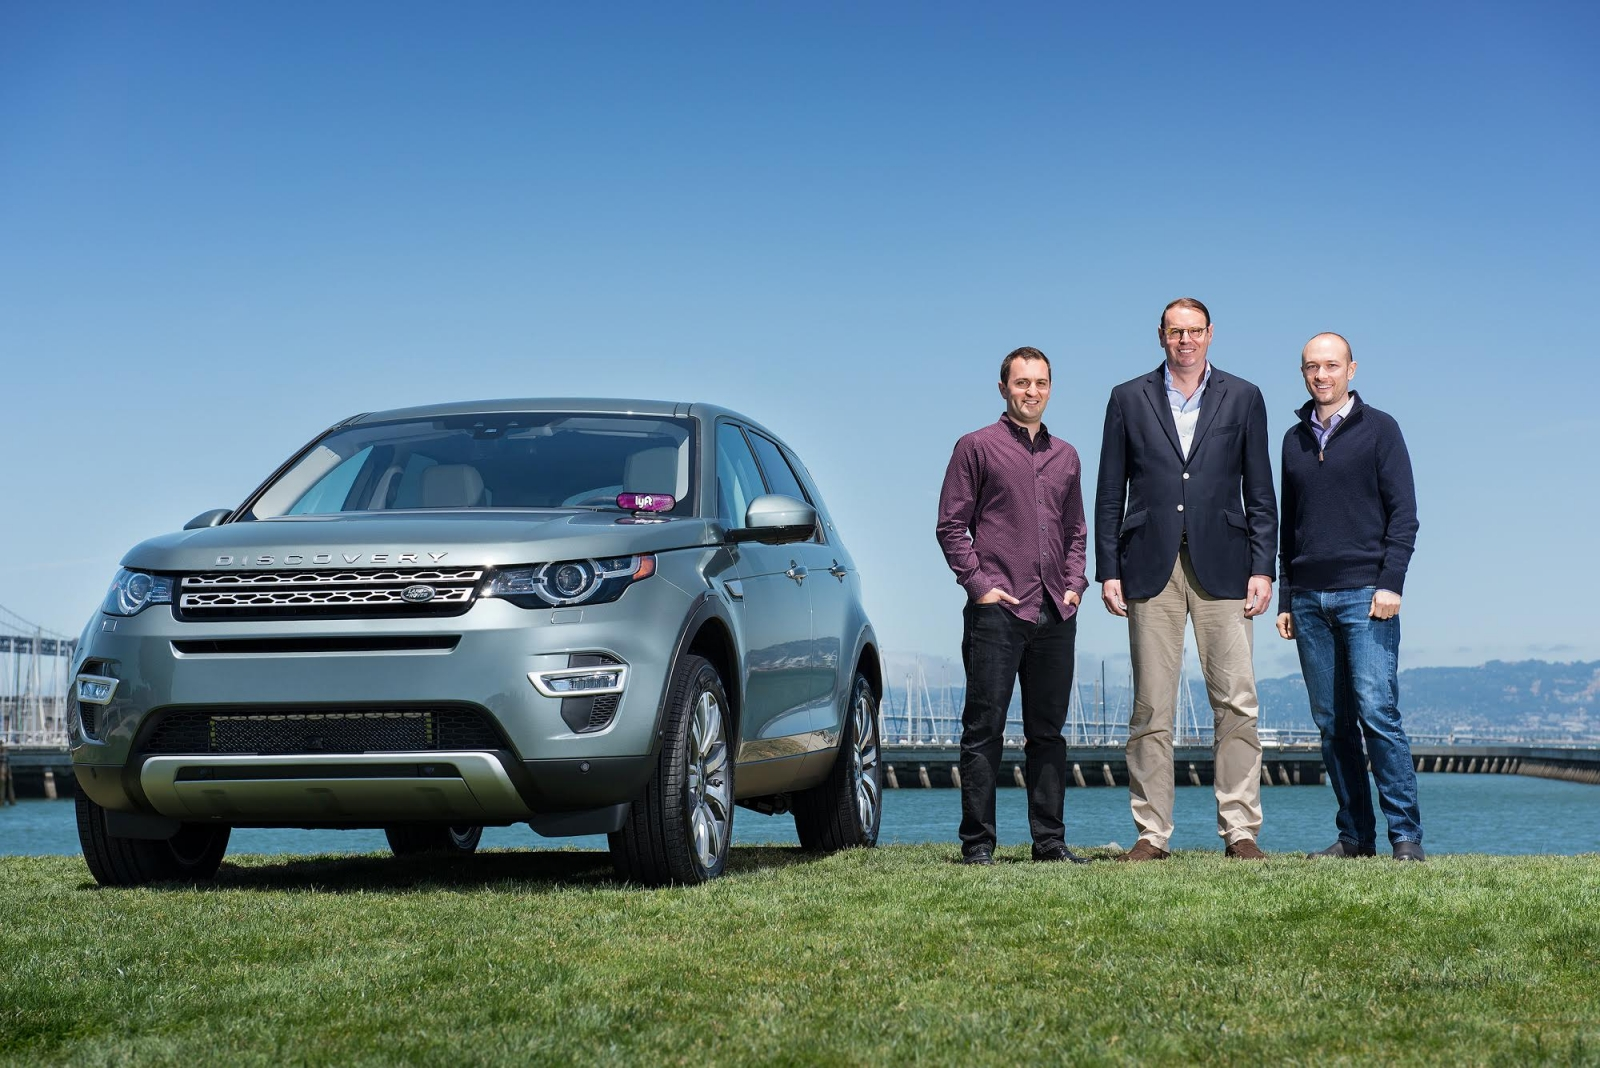 From left: Lyft president John Zimmer, Hanno Kirner of JLR and Logan Green, CEO of Lyft